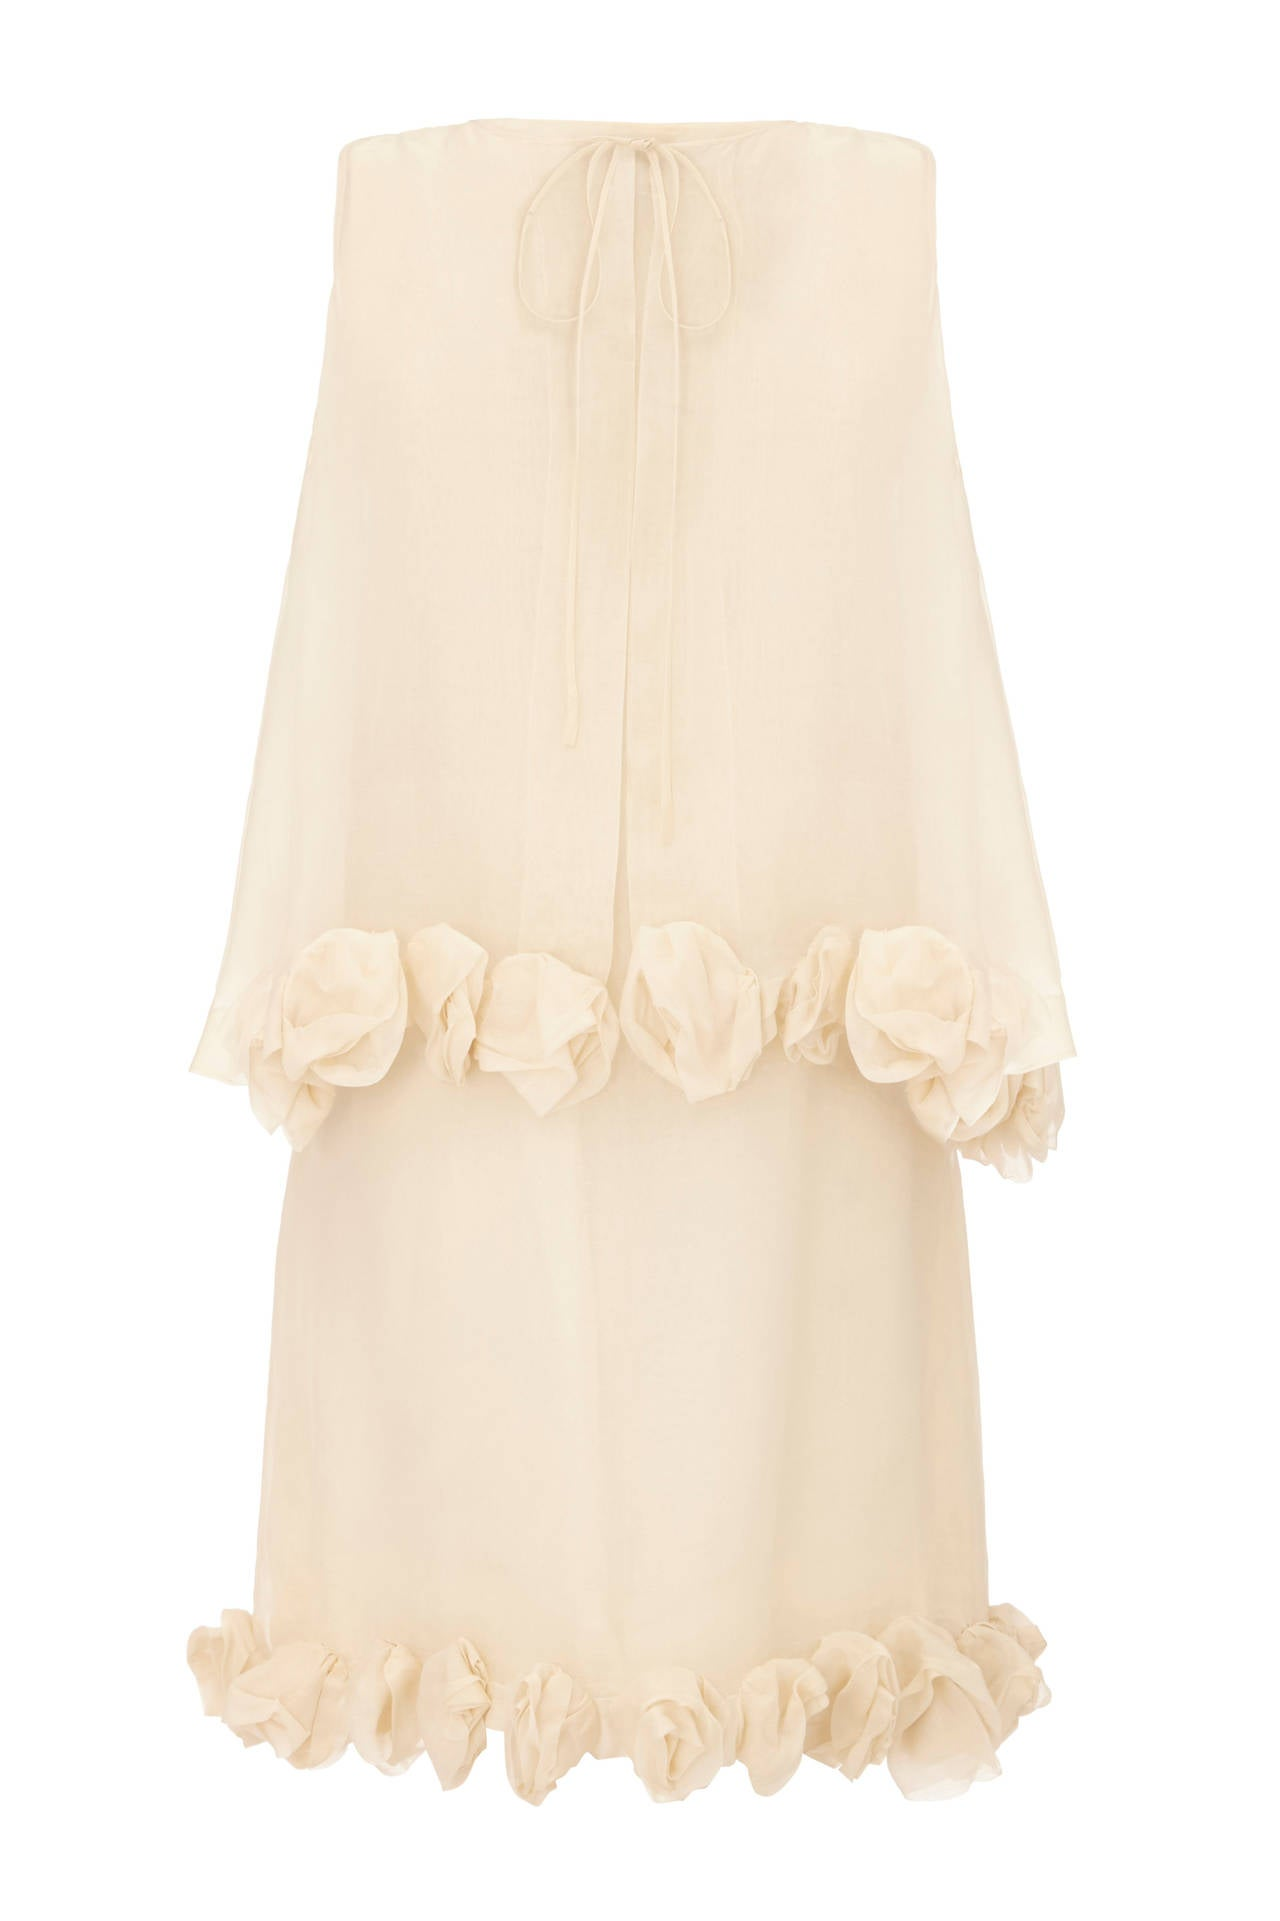 Sensational ivory silk organza dress and sleeveless jacket set with sculptural 3D organza roses around the hems.  This vintage 1960s piece by Christian Dior is couture made and would make a fantastic alternative bridal outfit.  It is in very good to